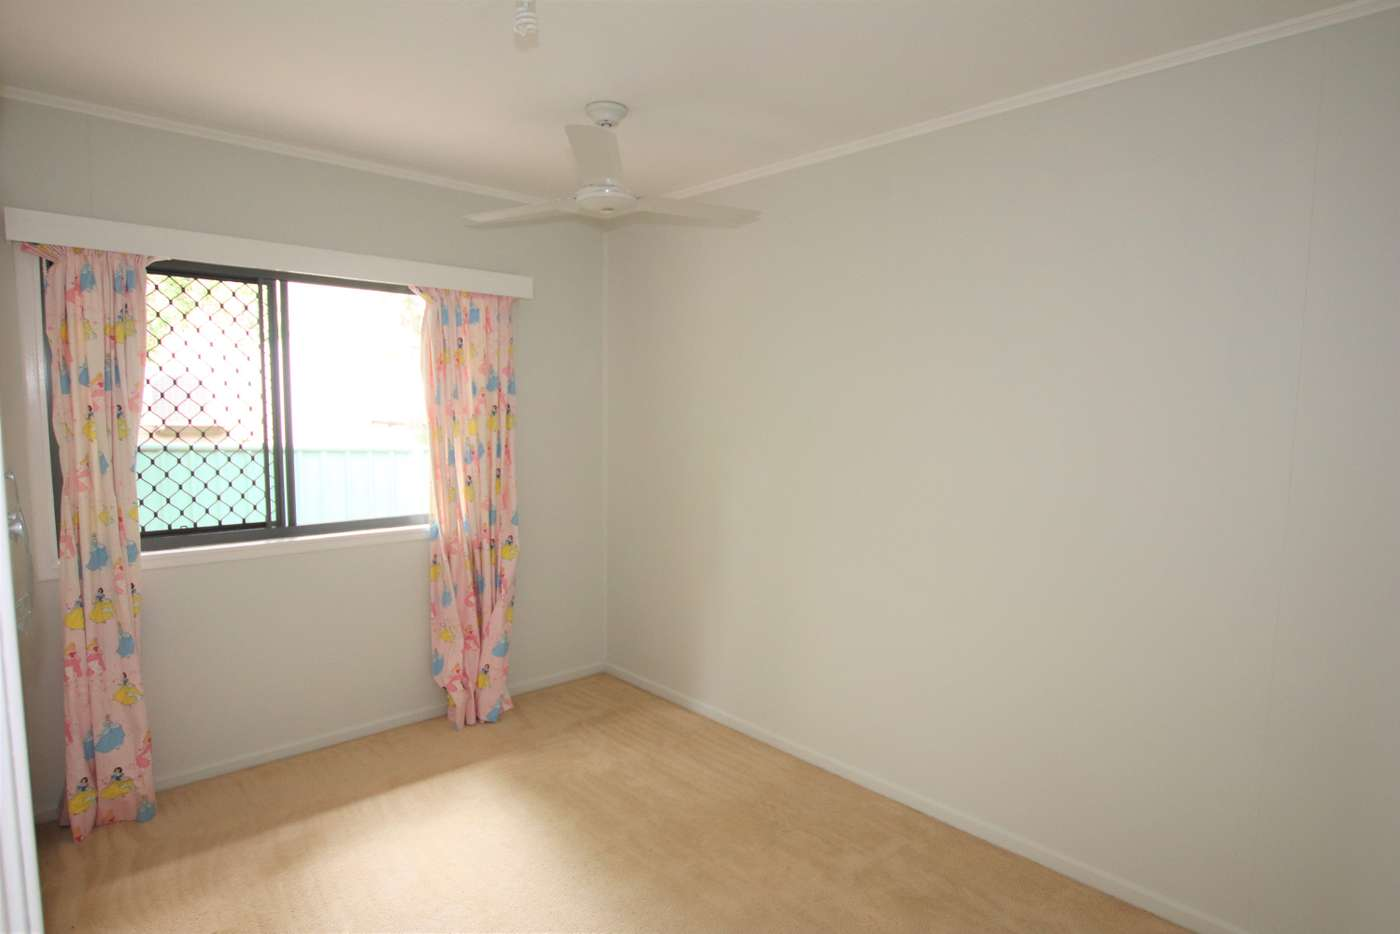 Sixth view of Homely house listing, 83 State Farm Road, Biloela QLD 4715